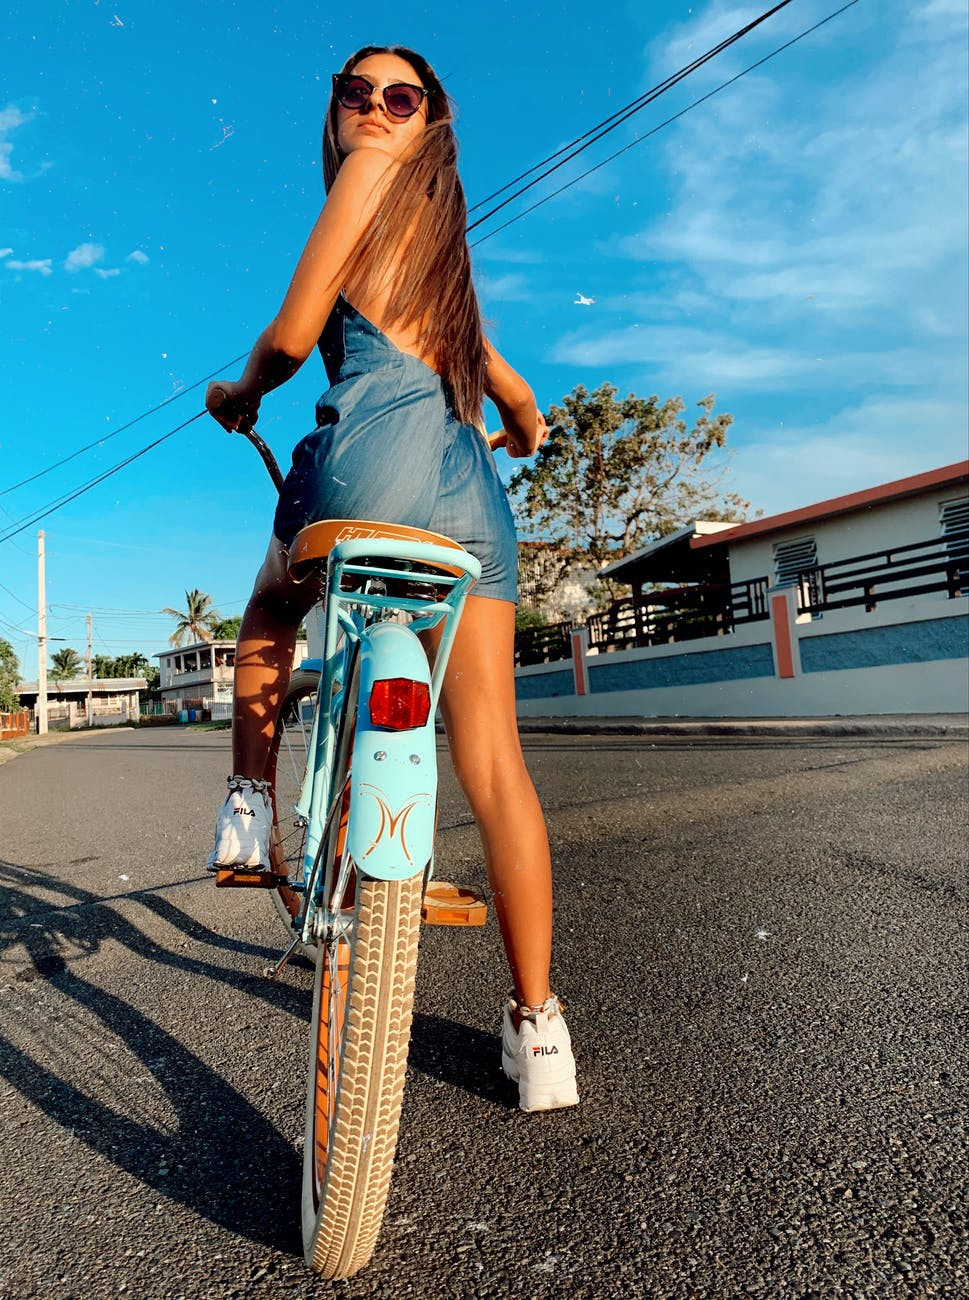 back view photo of woman in blue dress and sunglasses sitting on blue bicycle looking back